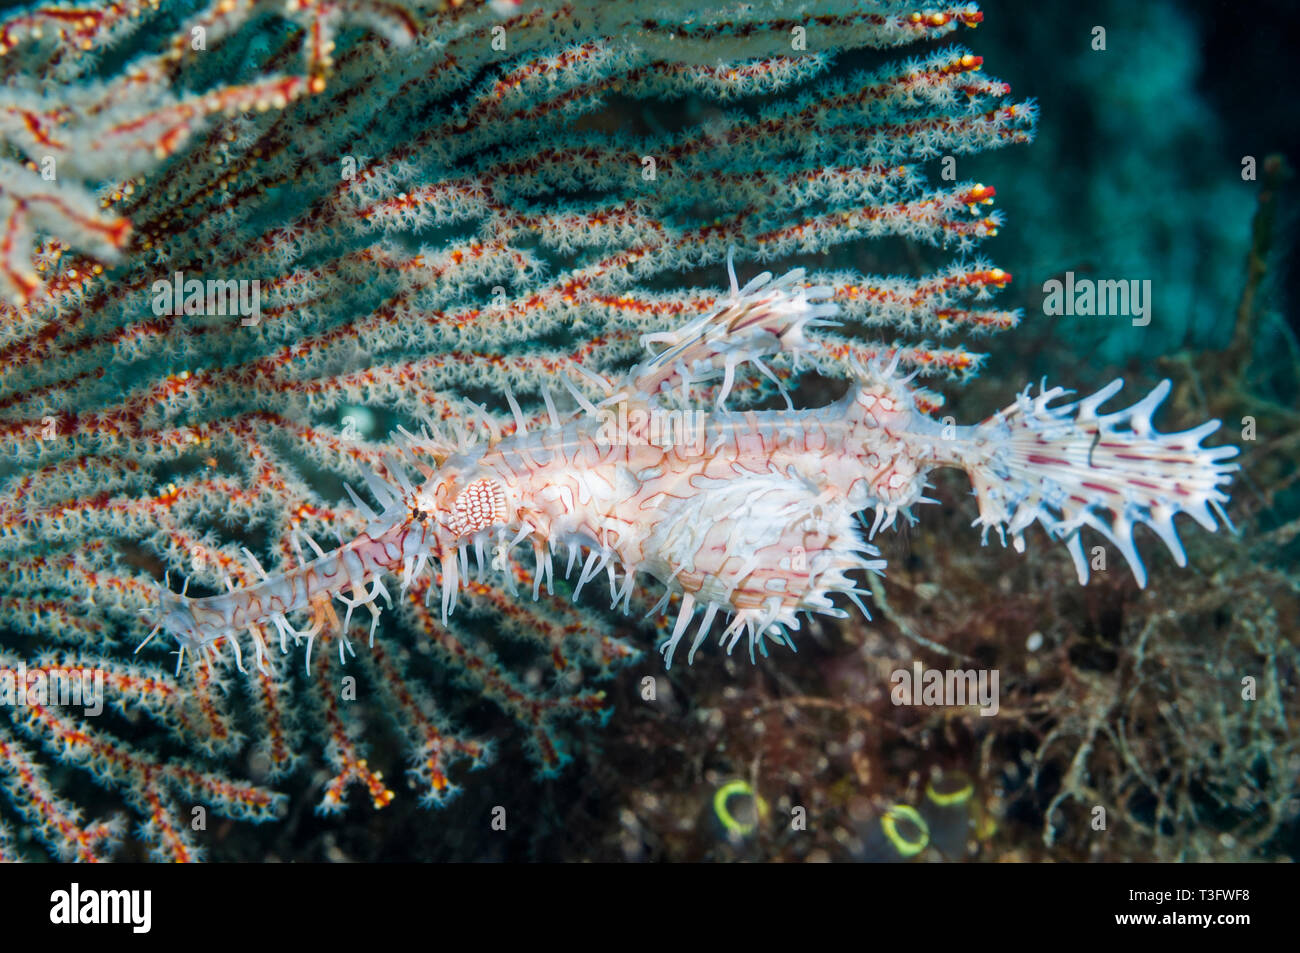 Ornate ghost pipefish [Solenostomus paradoxus], female carrying eggs in pelvic fin pouch.  Komodo National Park, Indonesia.  Indo-West Pacific. - Stock Image